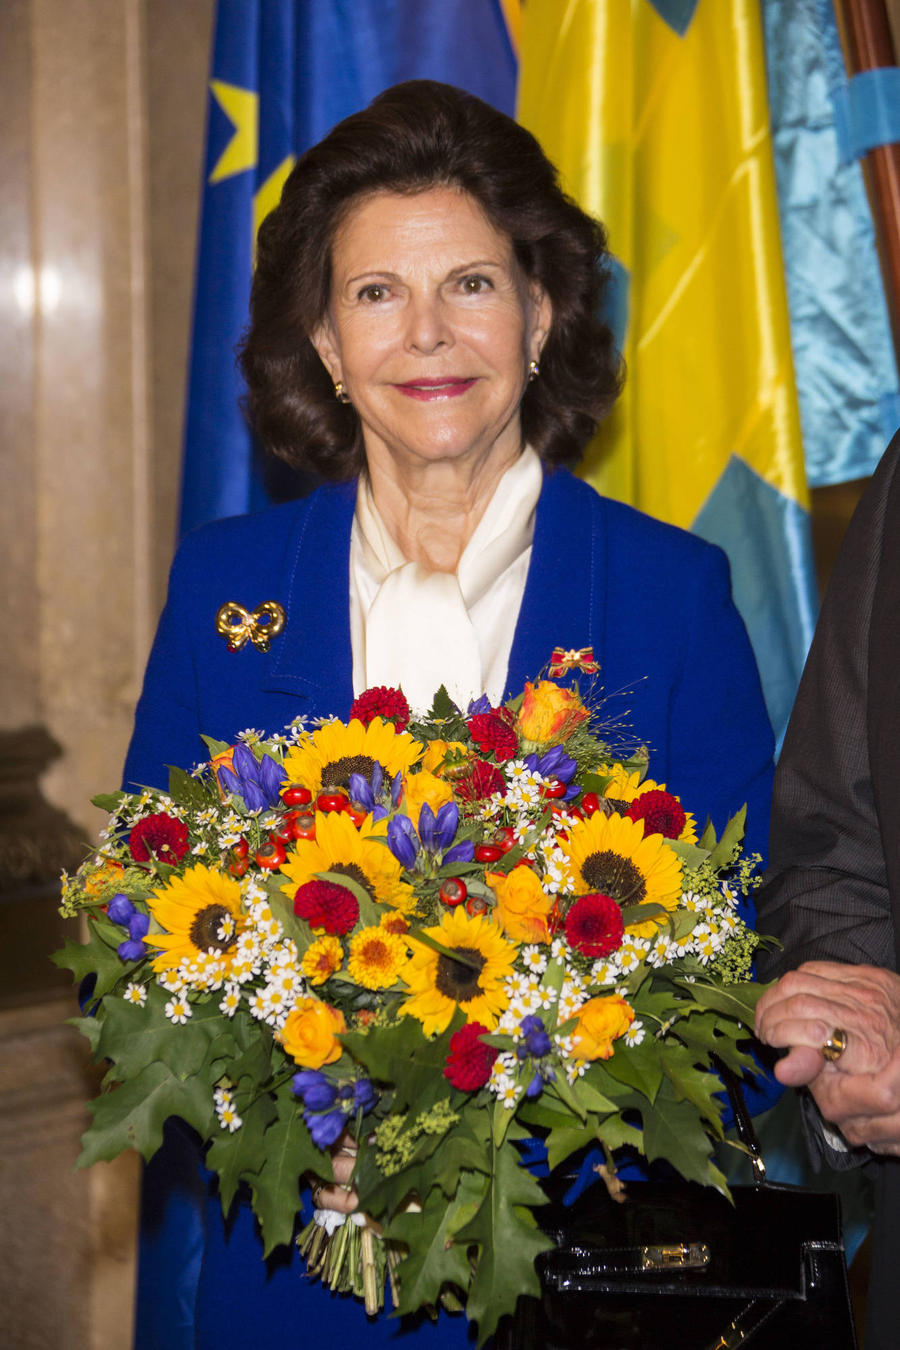 Sweden's Queen Silvia Back At Home After Birthday Hospitalisation